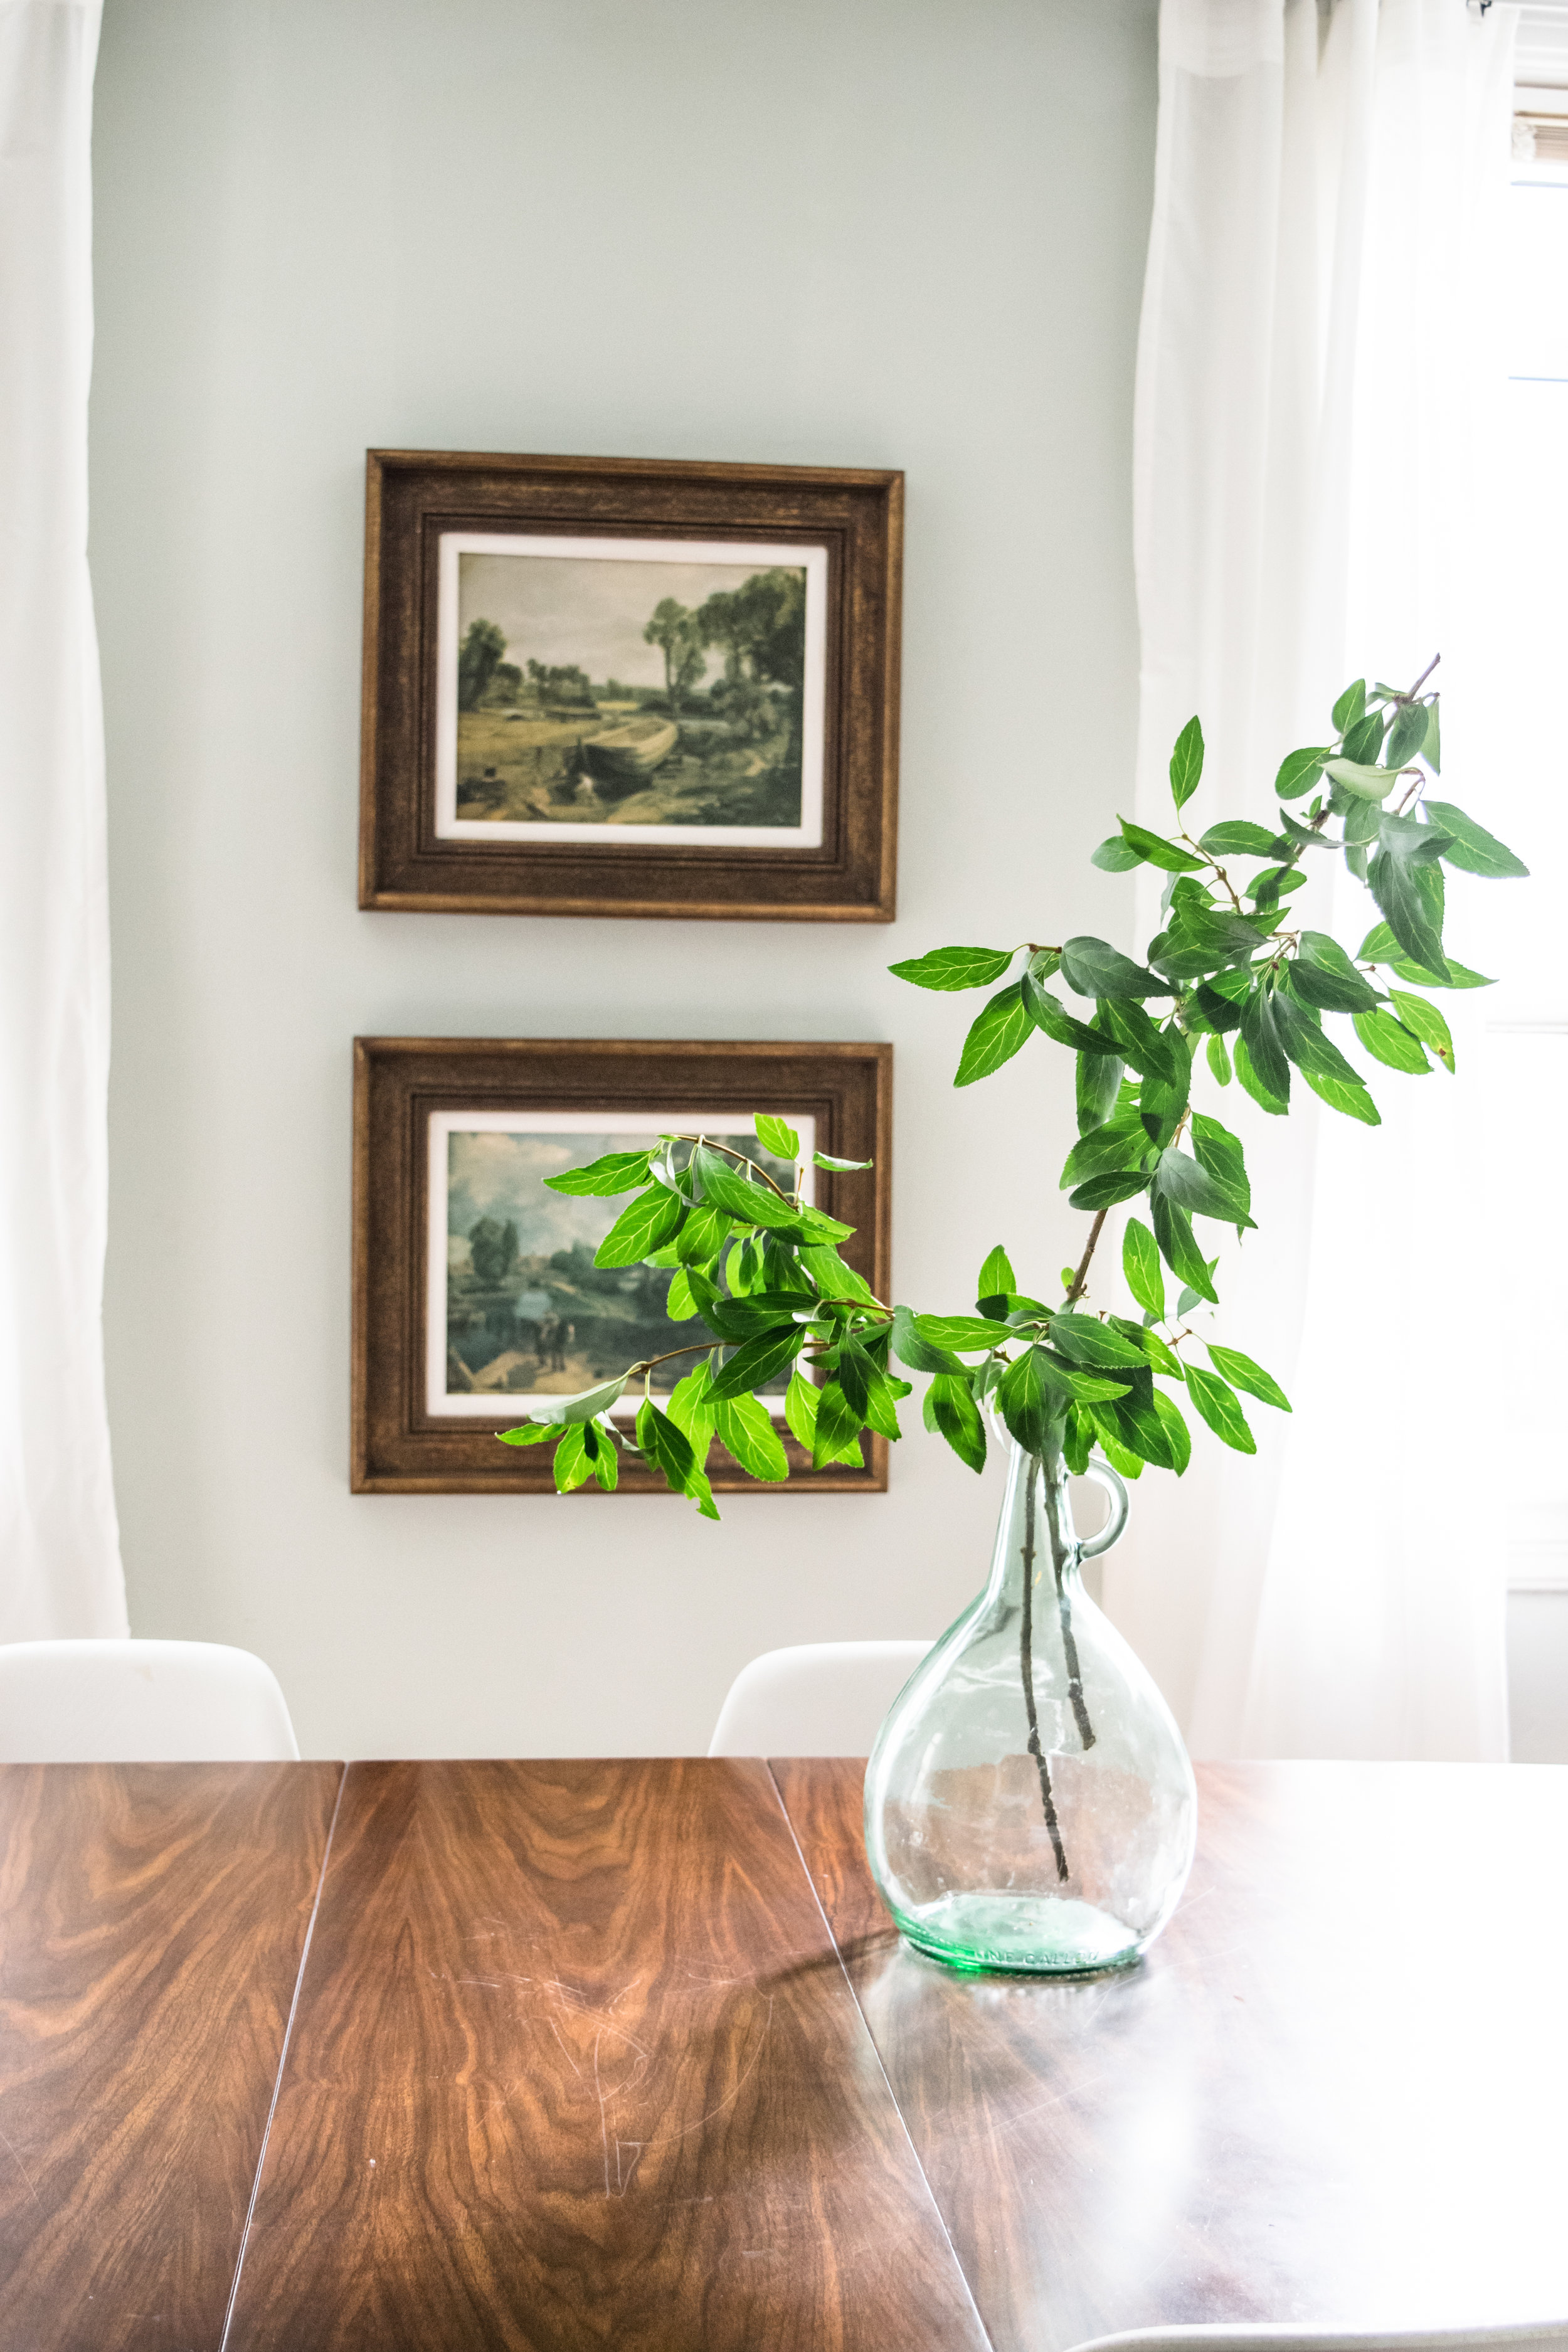 Modern meet antique dining room decor inspiration | antique piano, midcentury walnut dining table, white eames chairs, sherwin williams pearl gray walls, sherwin williams alabaster trim, antique oil painting reproductions, midcentury still life painting, sheepskin on piano bench